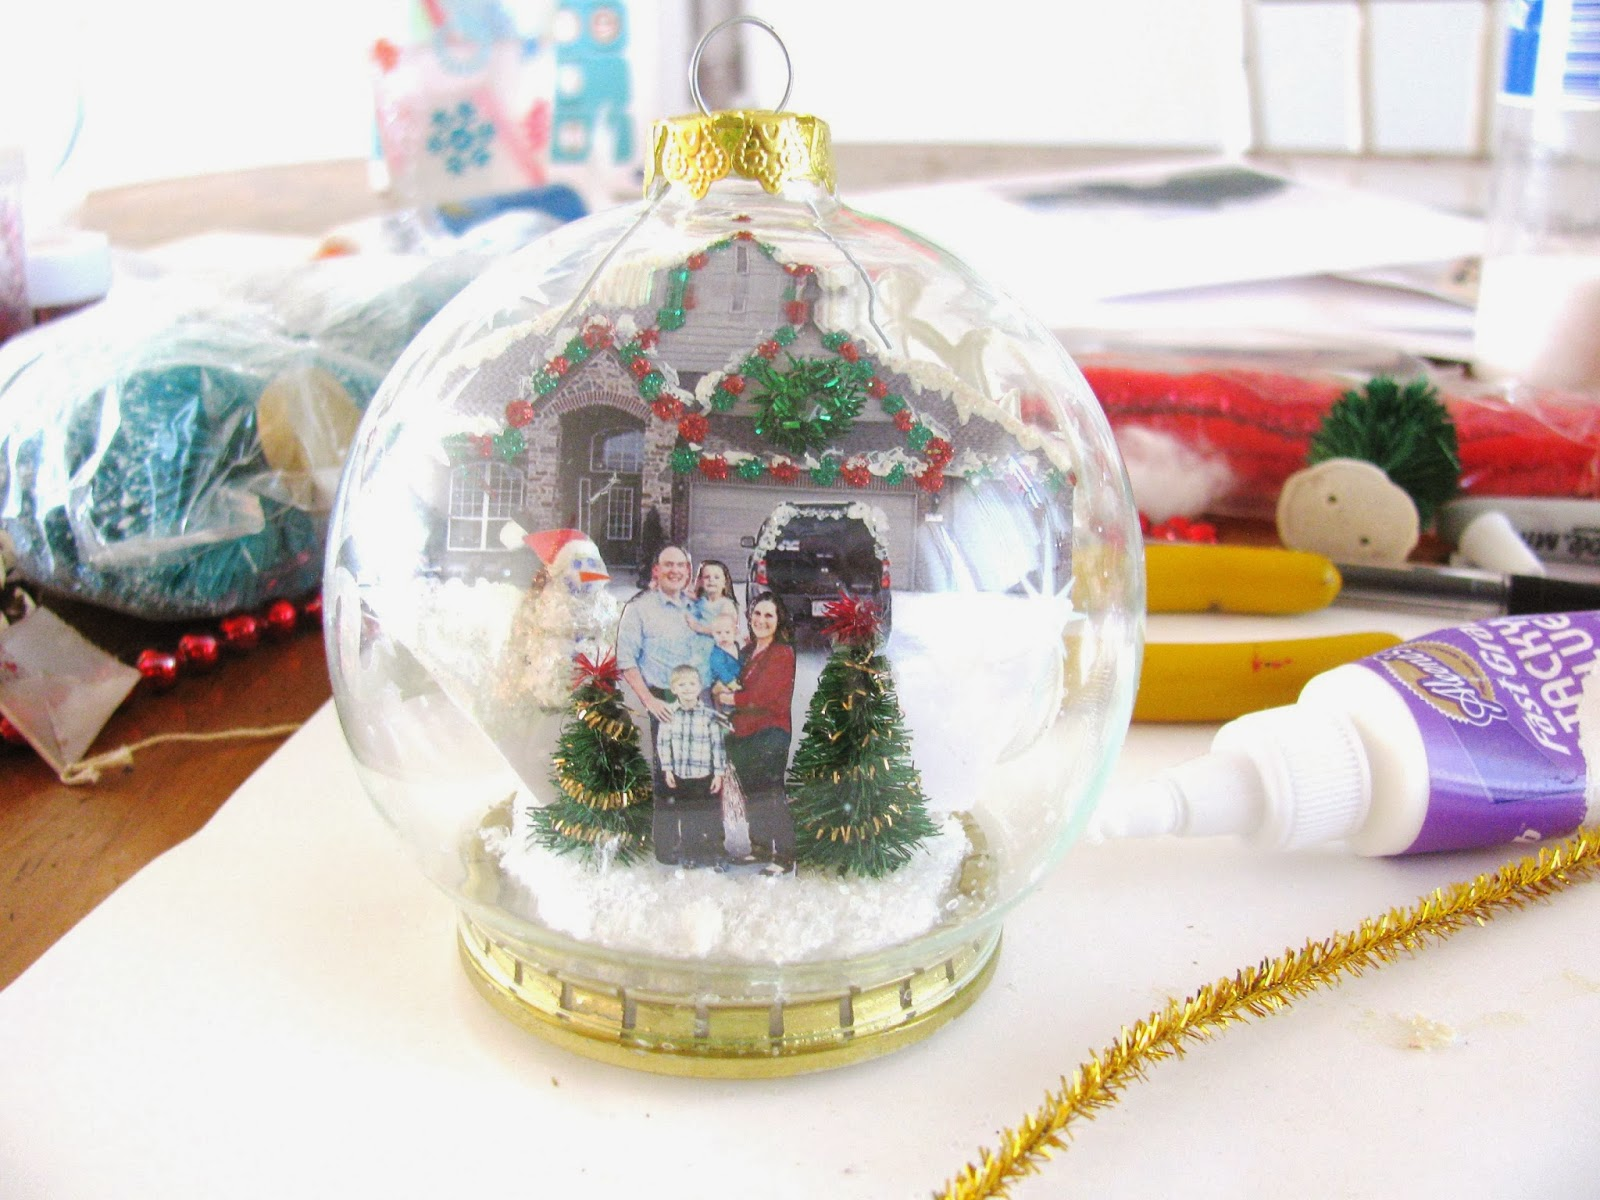 Christmas Diorama Ornaments.Pondicherry Cottage How To Make A Diorama Ornament Diy